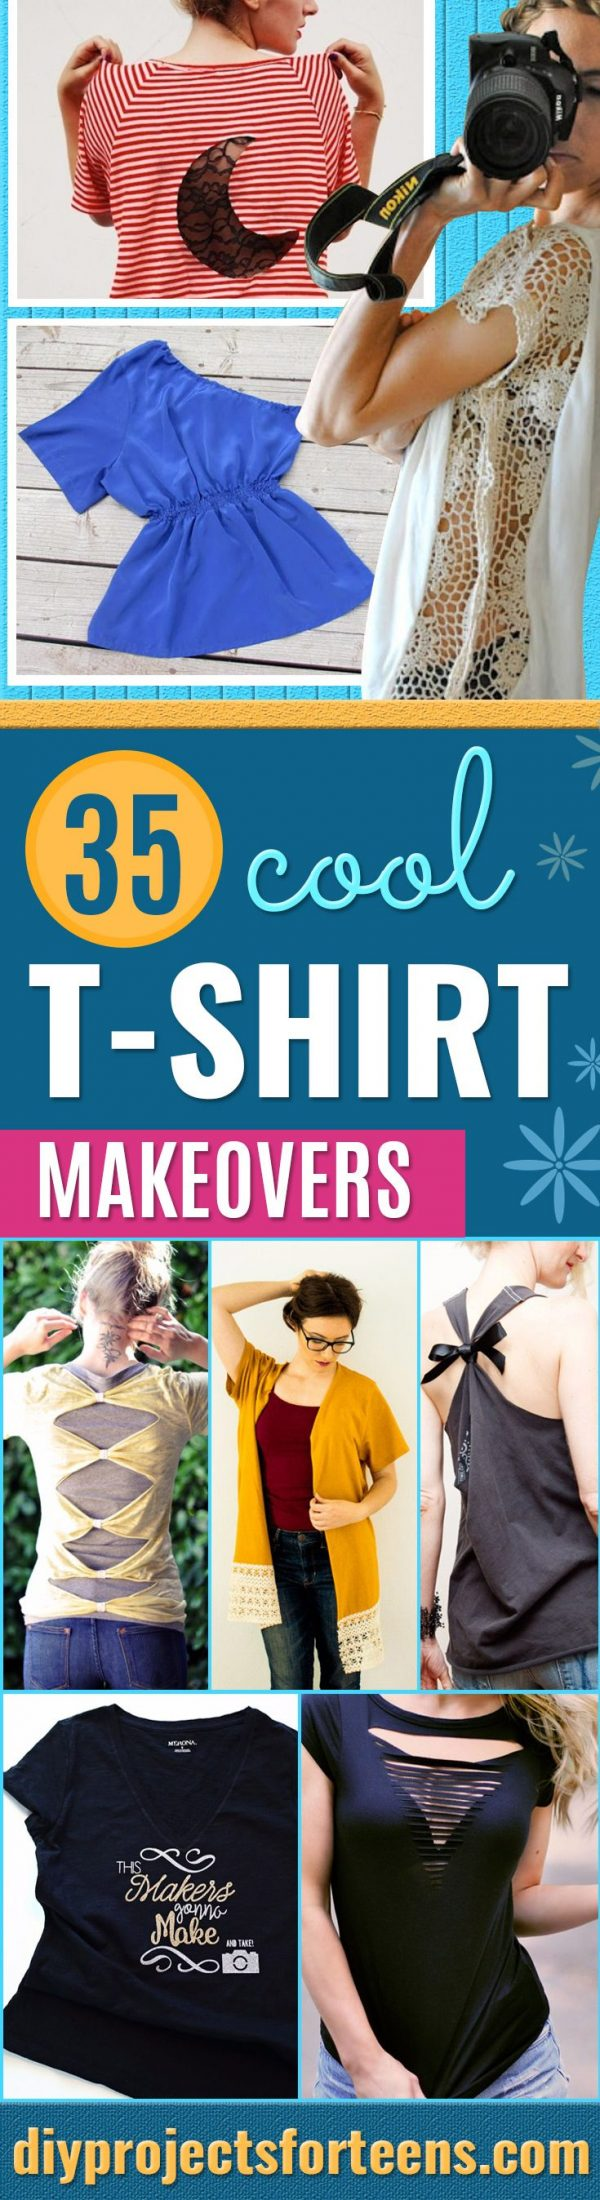 DIY T-Shirt Makeovers - Fun Upcycle Ideas for Tees - Cheap Clothes to Make- How To Make Simple Awesome Summer Style Projects - Cute Sleeve and Neckline Ideas - Cheap and Easy Ways To Upcycle Tshirts for Fun Clothes and Fashion - Quick Projects for Teens and Teenagers on A Budget #teenfashion #tshirtideas #teencrafts